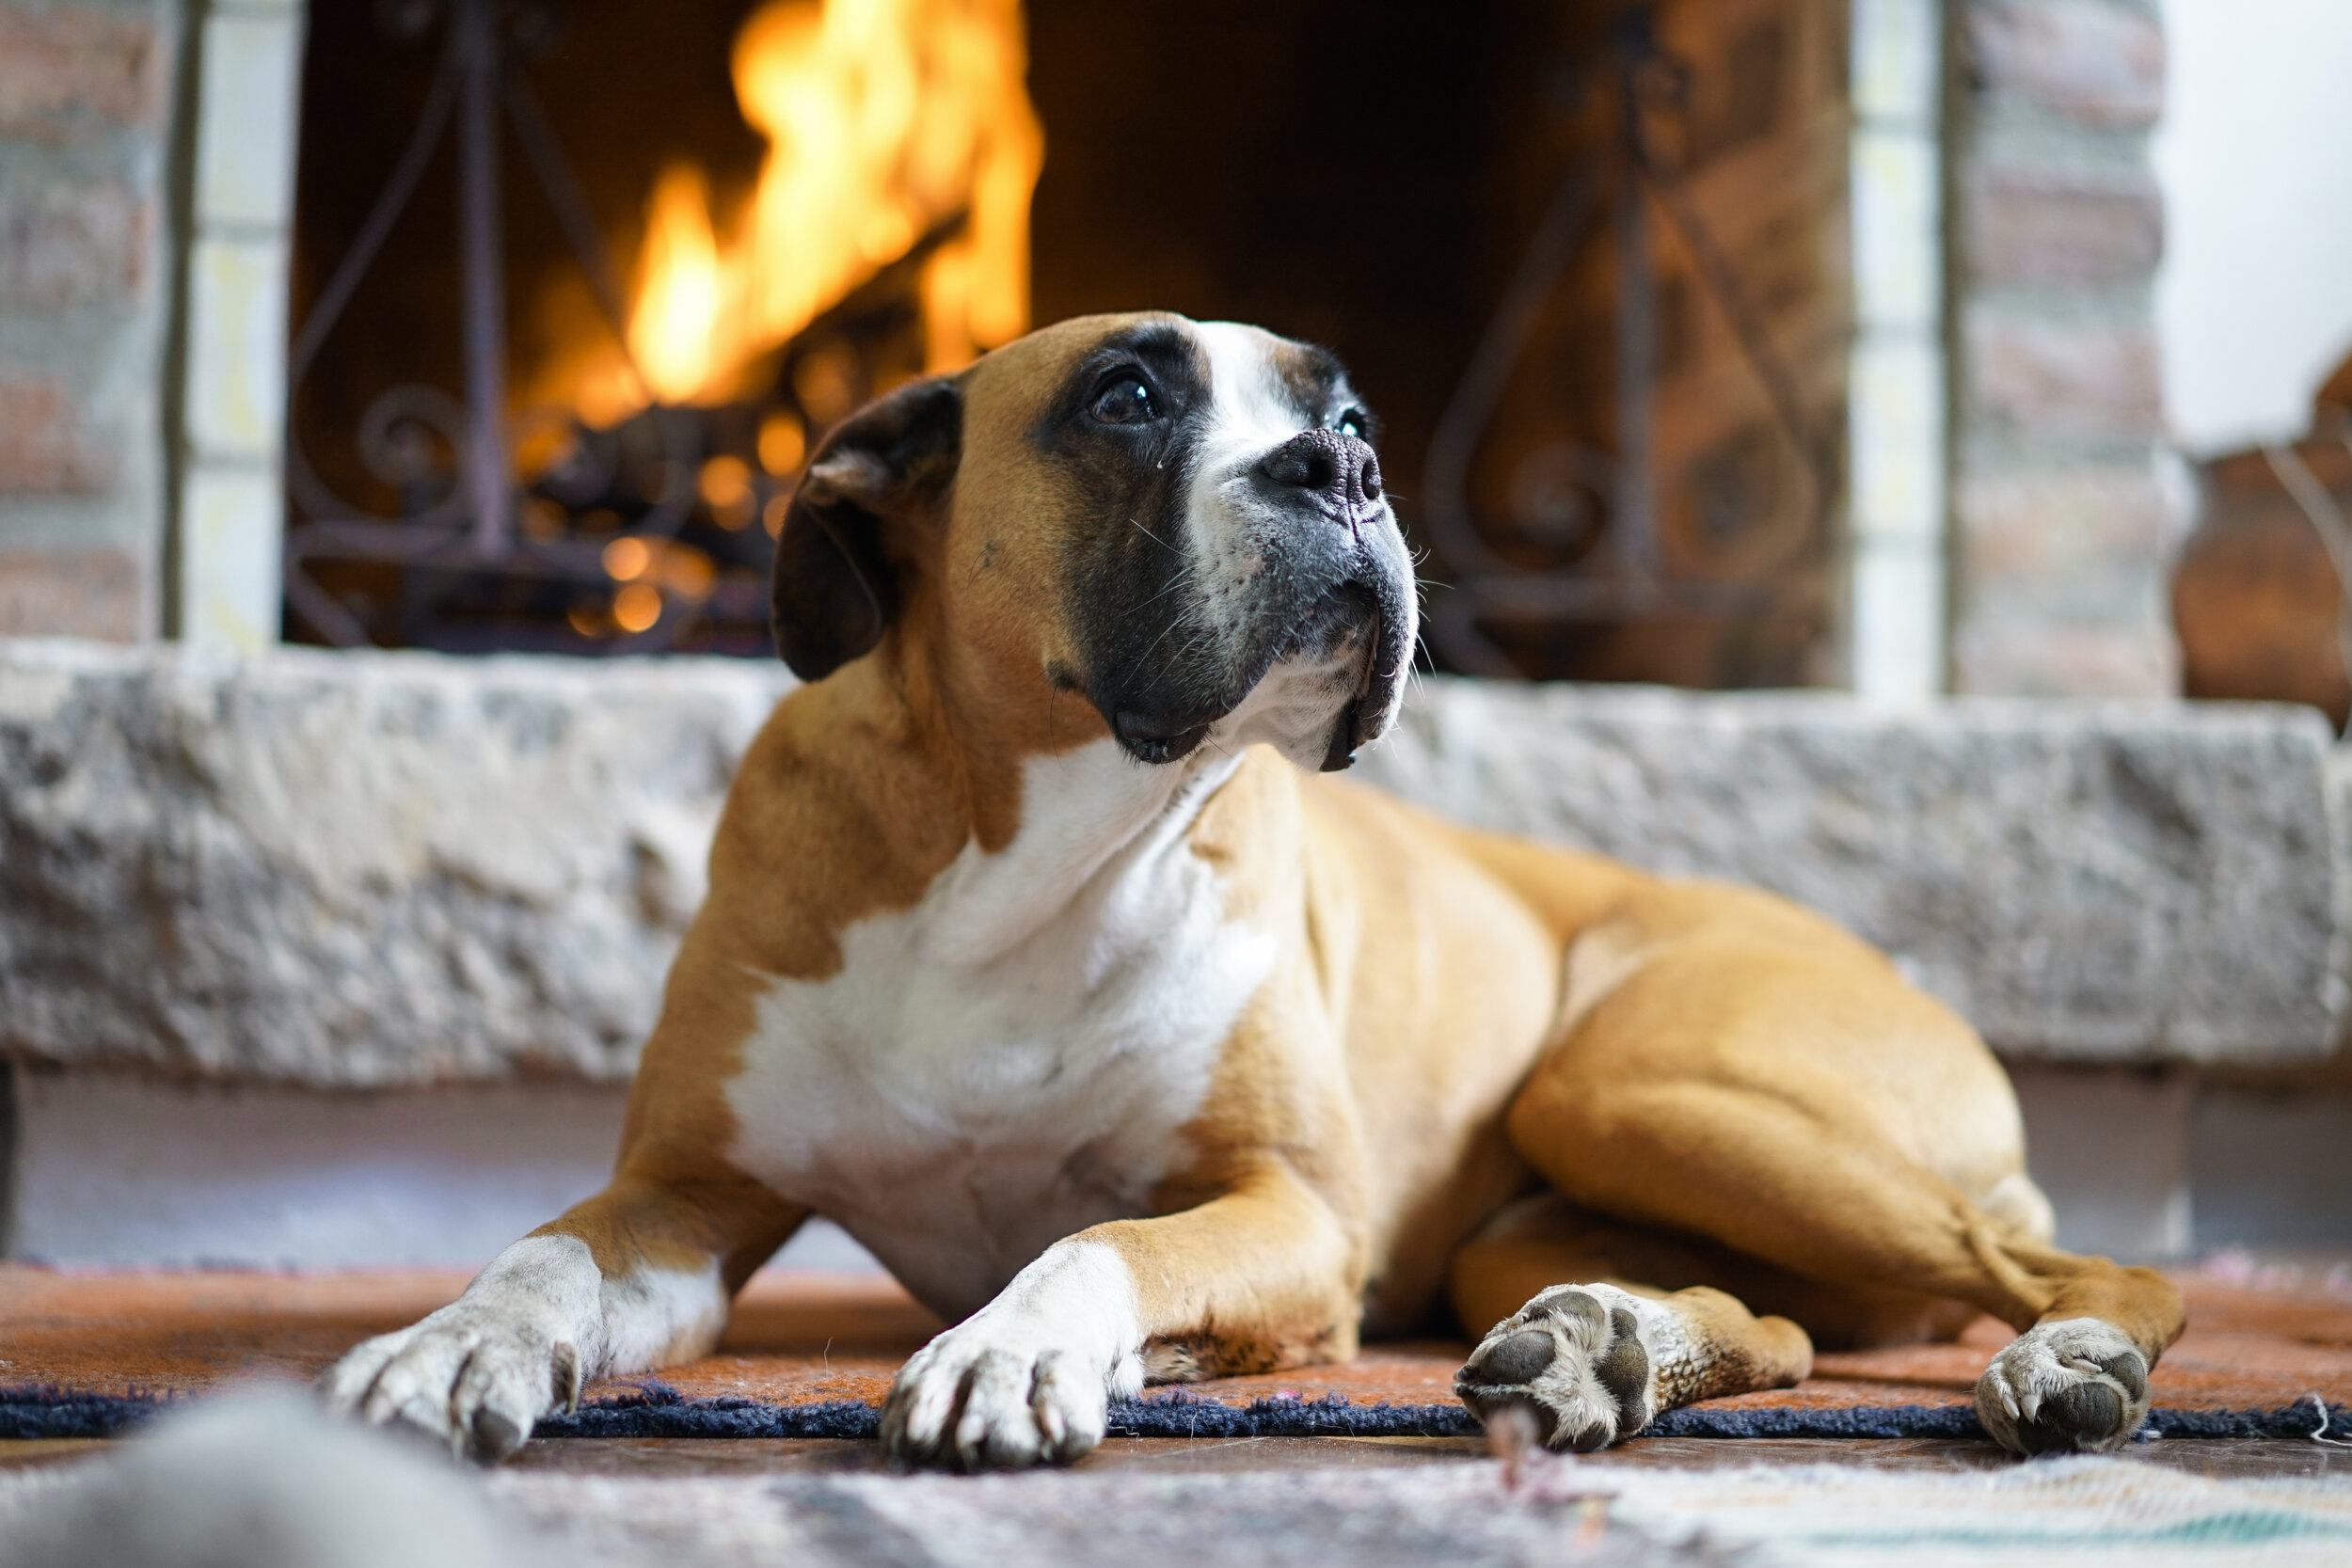 dog in front of brick wall and fireplace